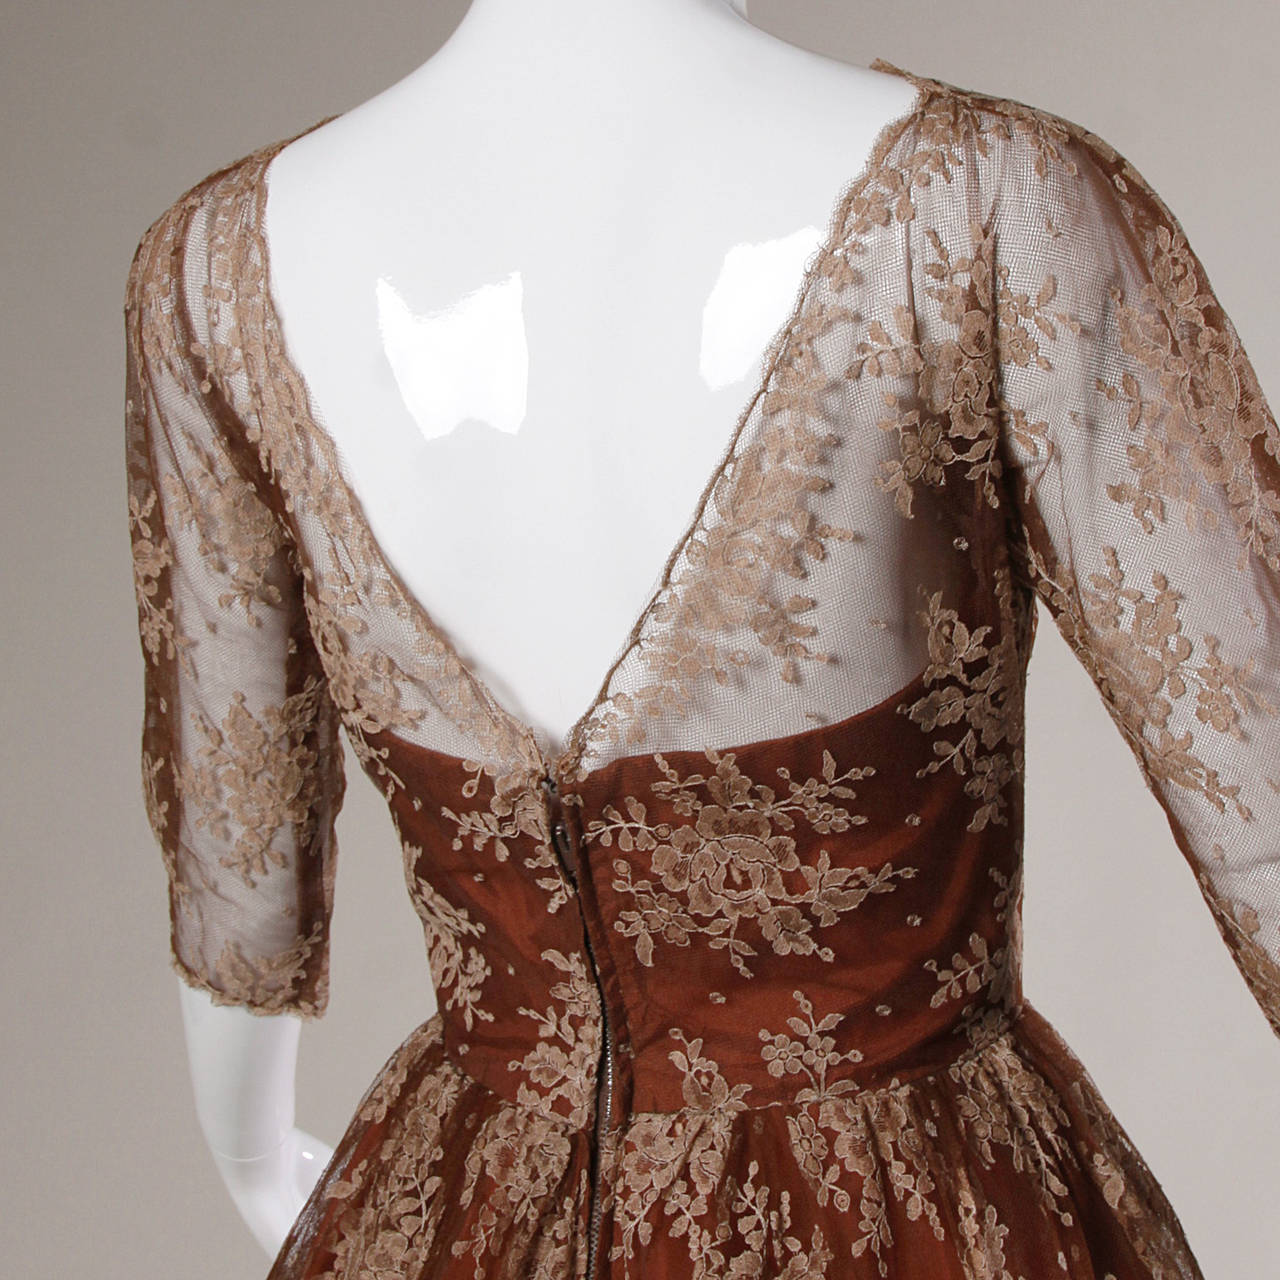 Dreamy 1950s Brown Tulle Chantilly Lace Cocktail Dress 10